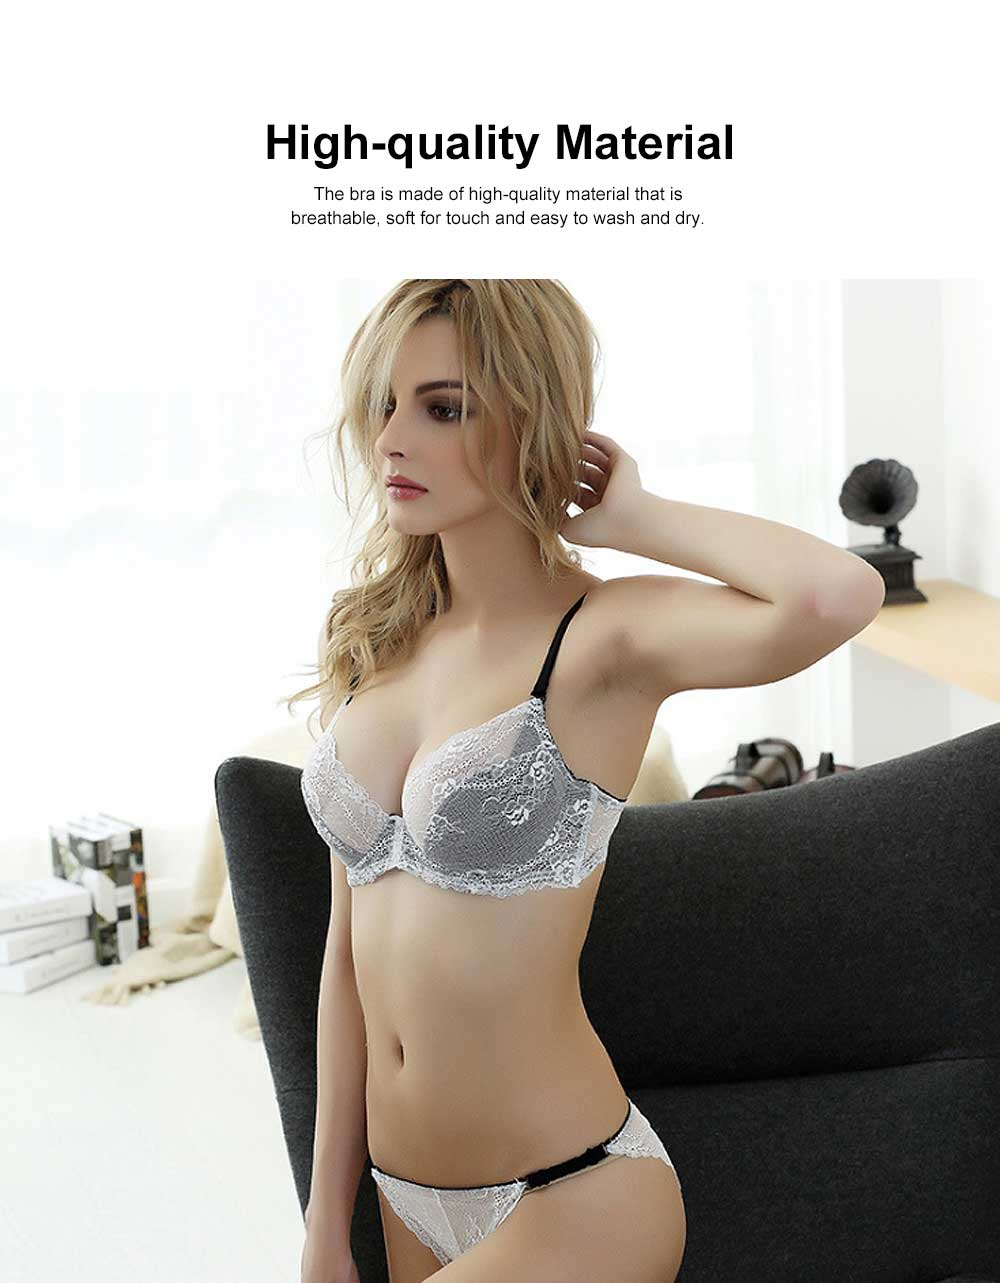 Women's Underwear Set Sexy Bra Set with Lace, Transparent Push-up Bra for Summer, Extra Large Size Bra and Panty Set 2